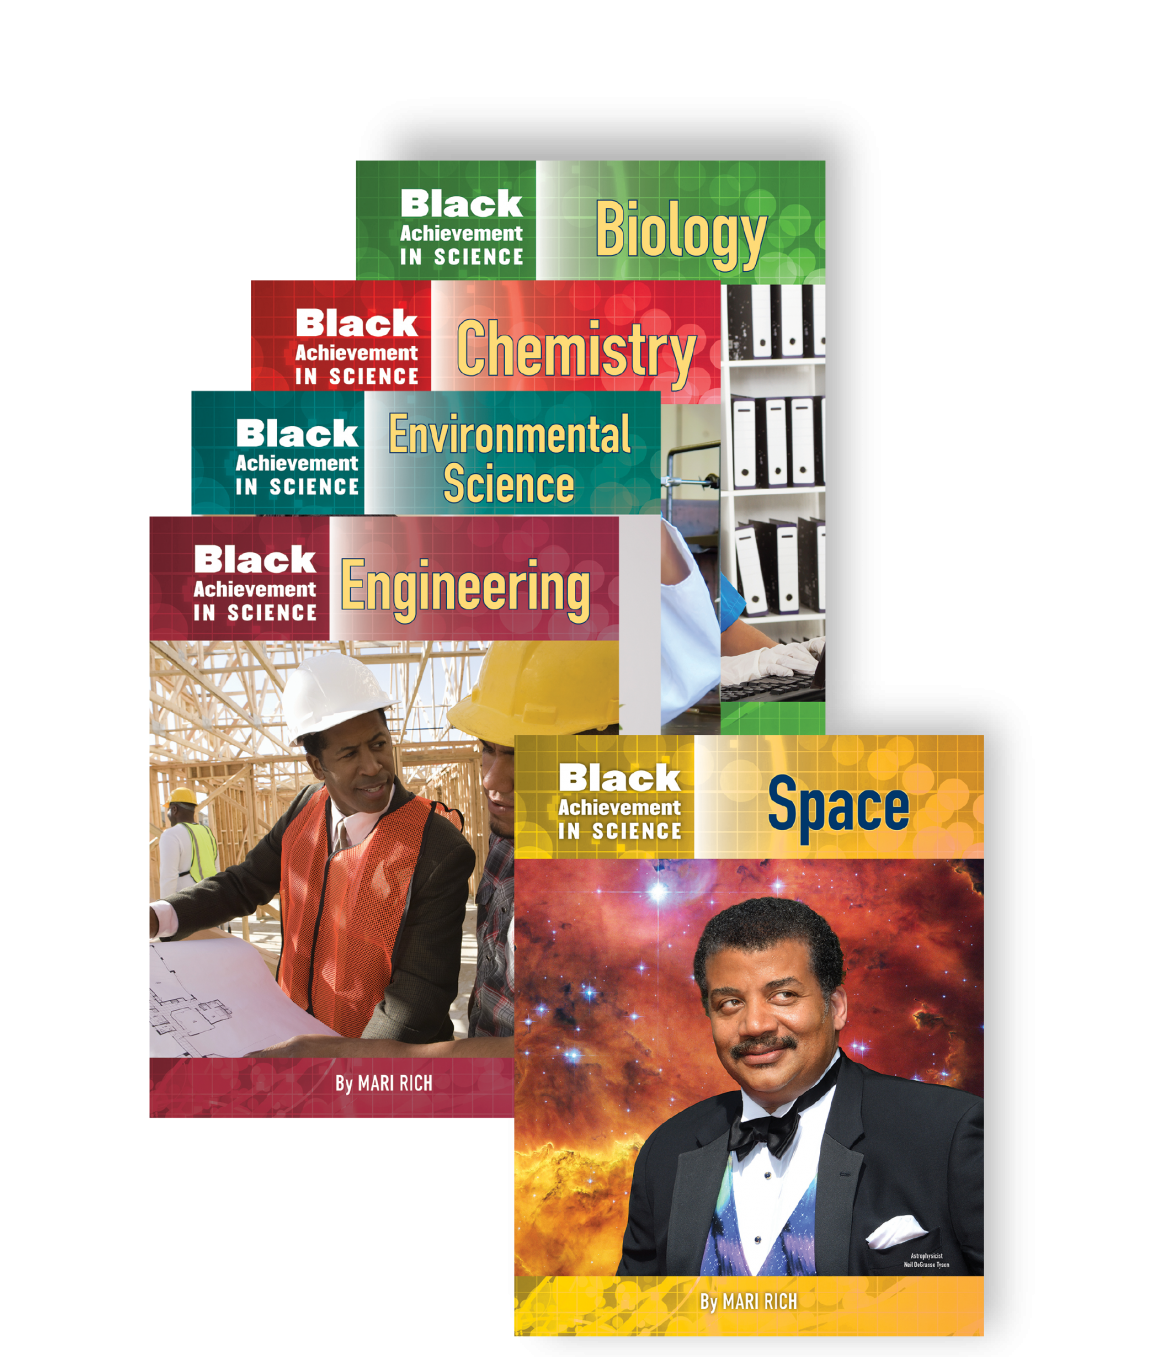 Black-Achievement-In-Science-01.png